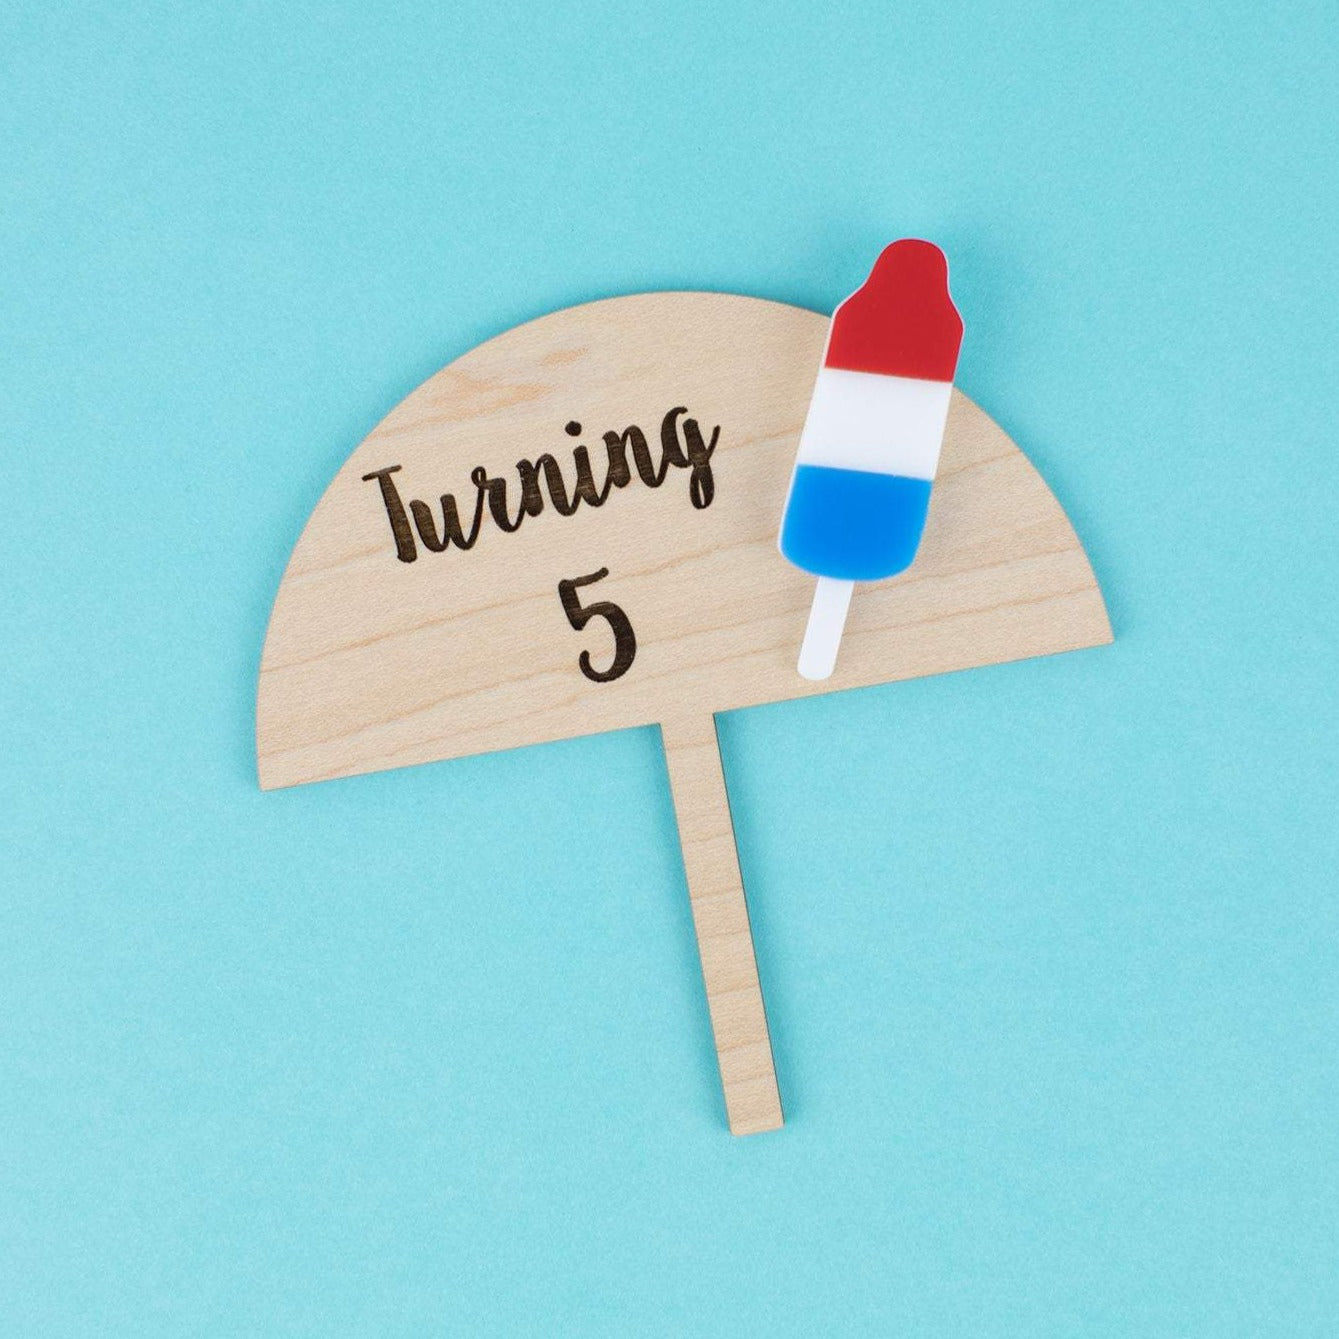 Bomb Pop Small Cake Topper, Custom Cake Topper, Popsicle Party, Bomb Pop Party, Cake Topper, Birthday Cake, Ice Cream Party, Patriotic